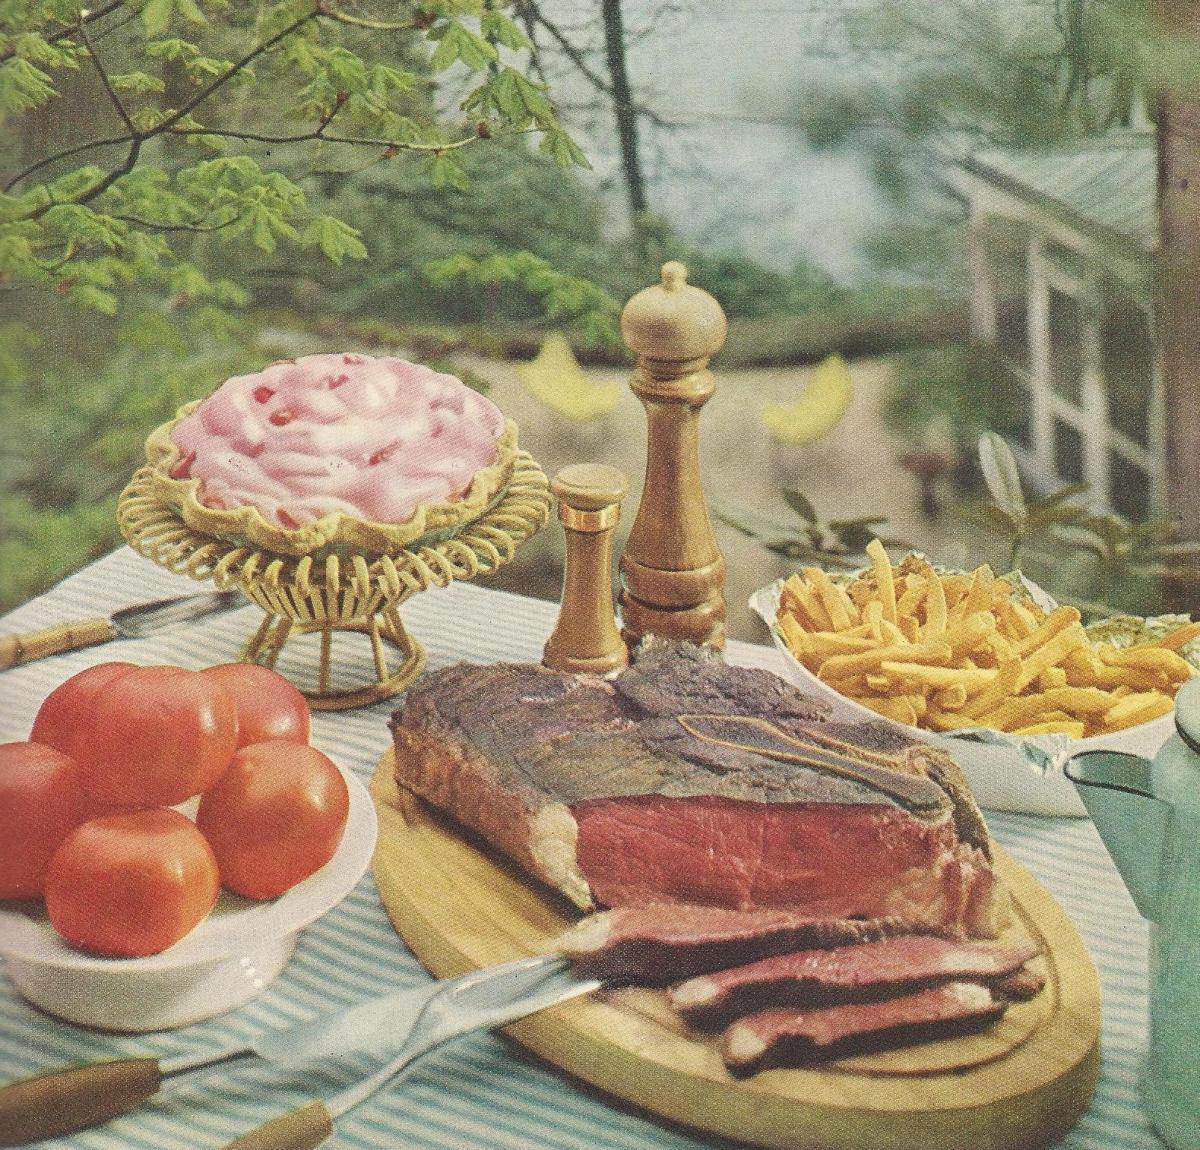 Vintage Recipes 57 Mid Century Outdoor Meals 1950s Style